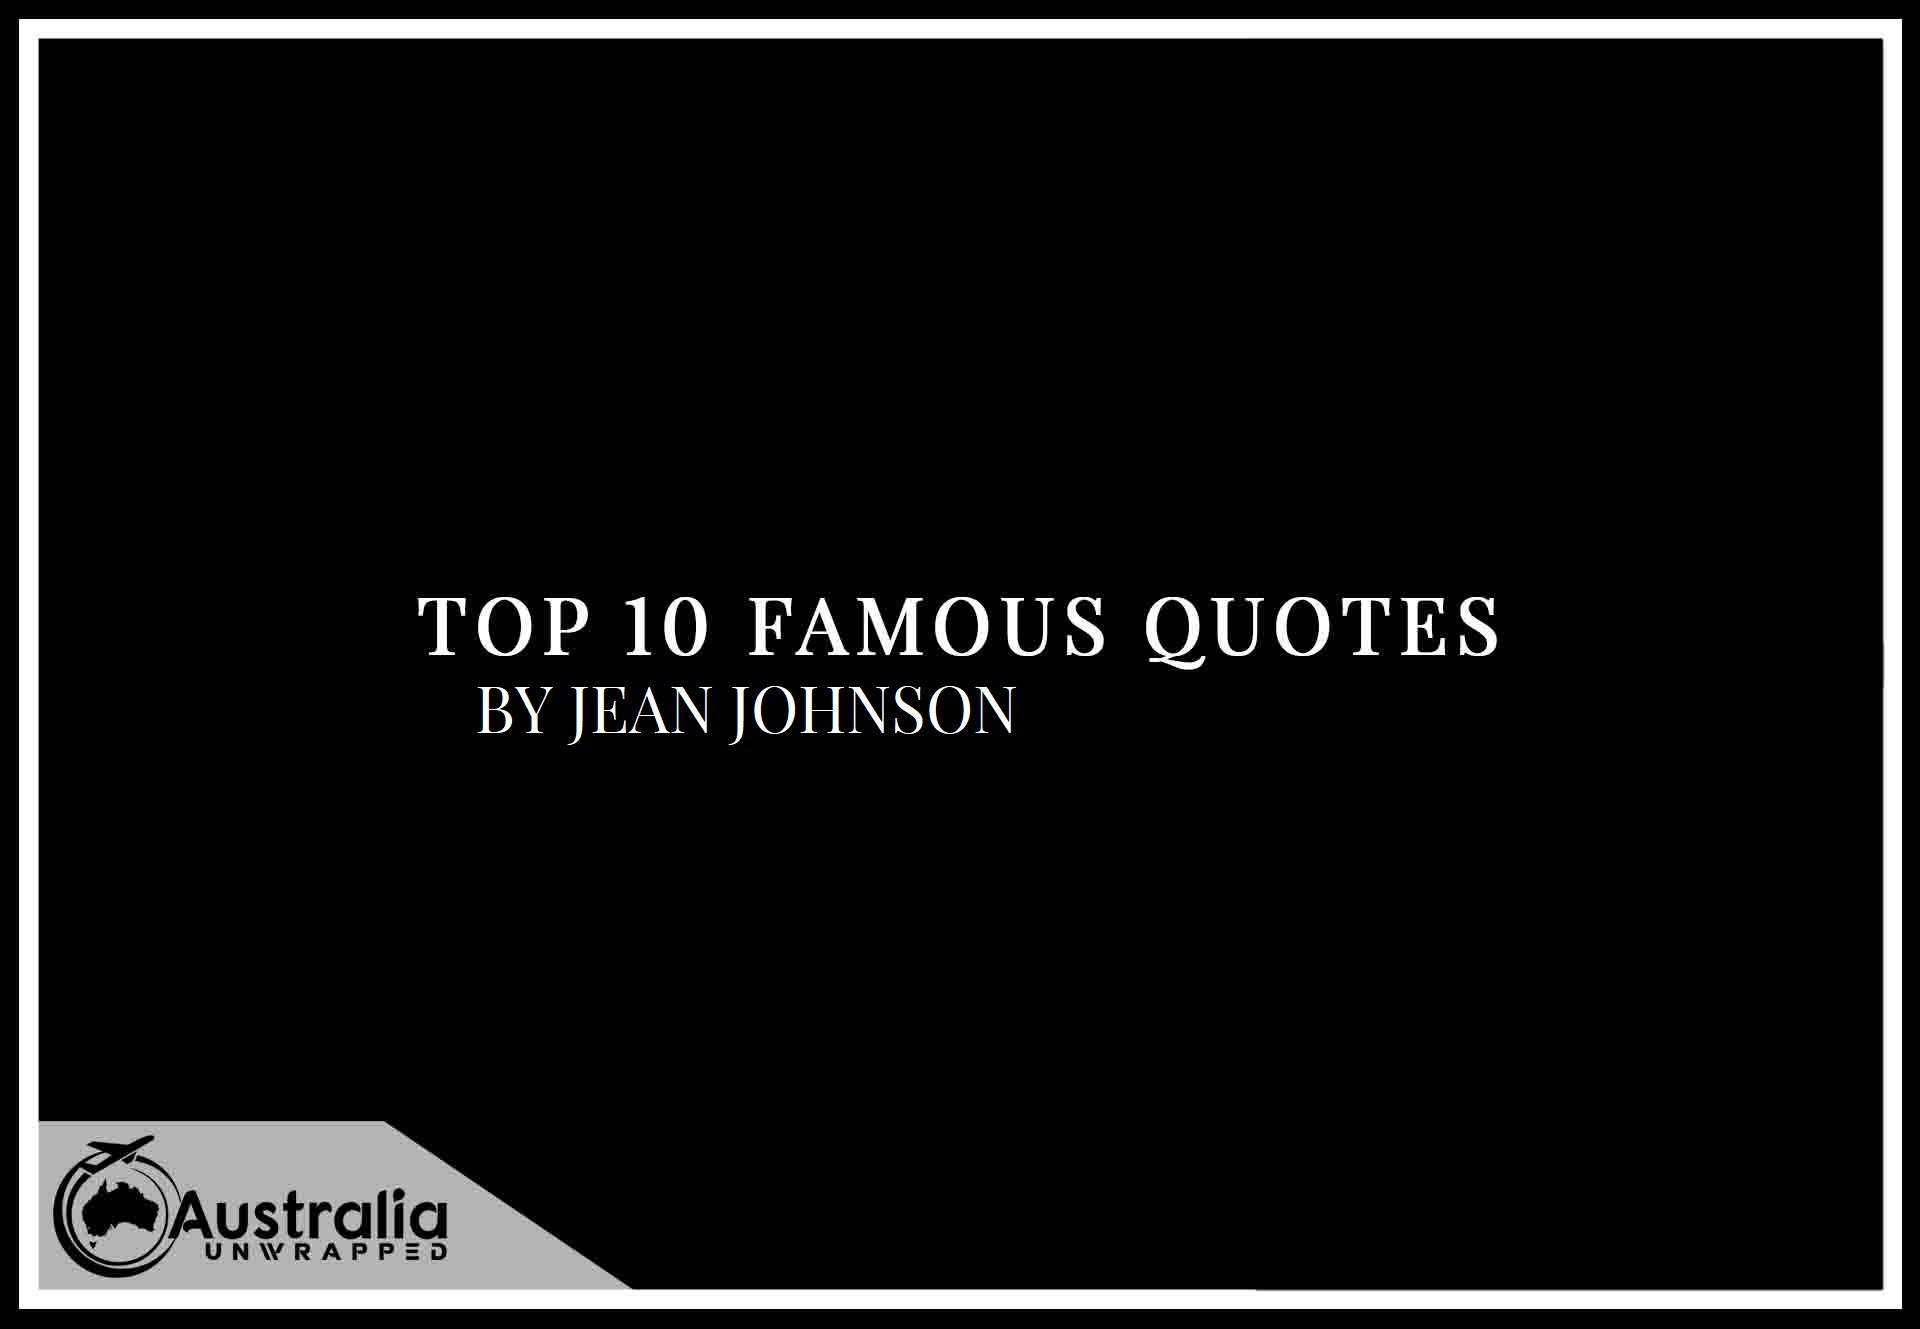 Top 10 Famous Quotes by Author Jean Johnson